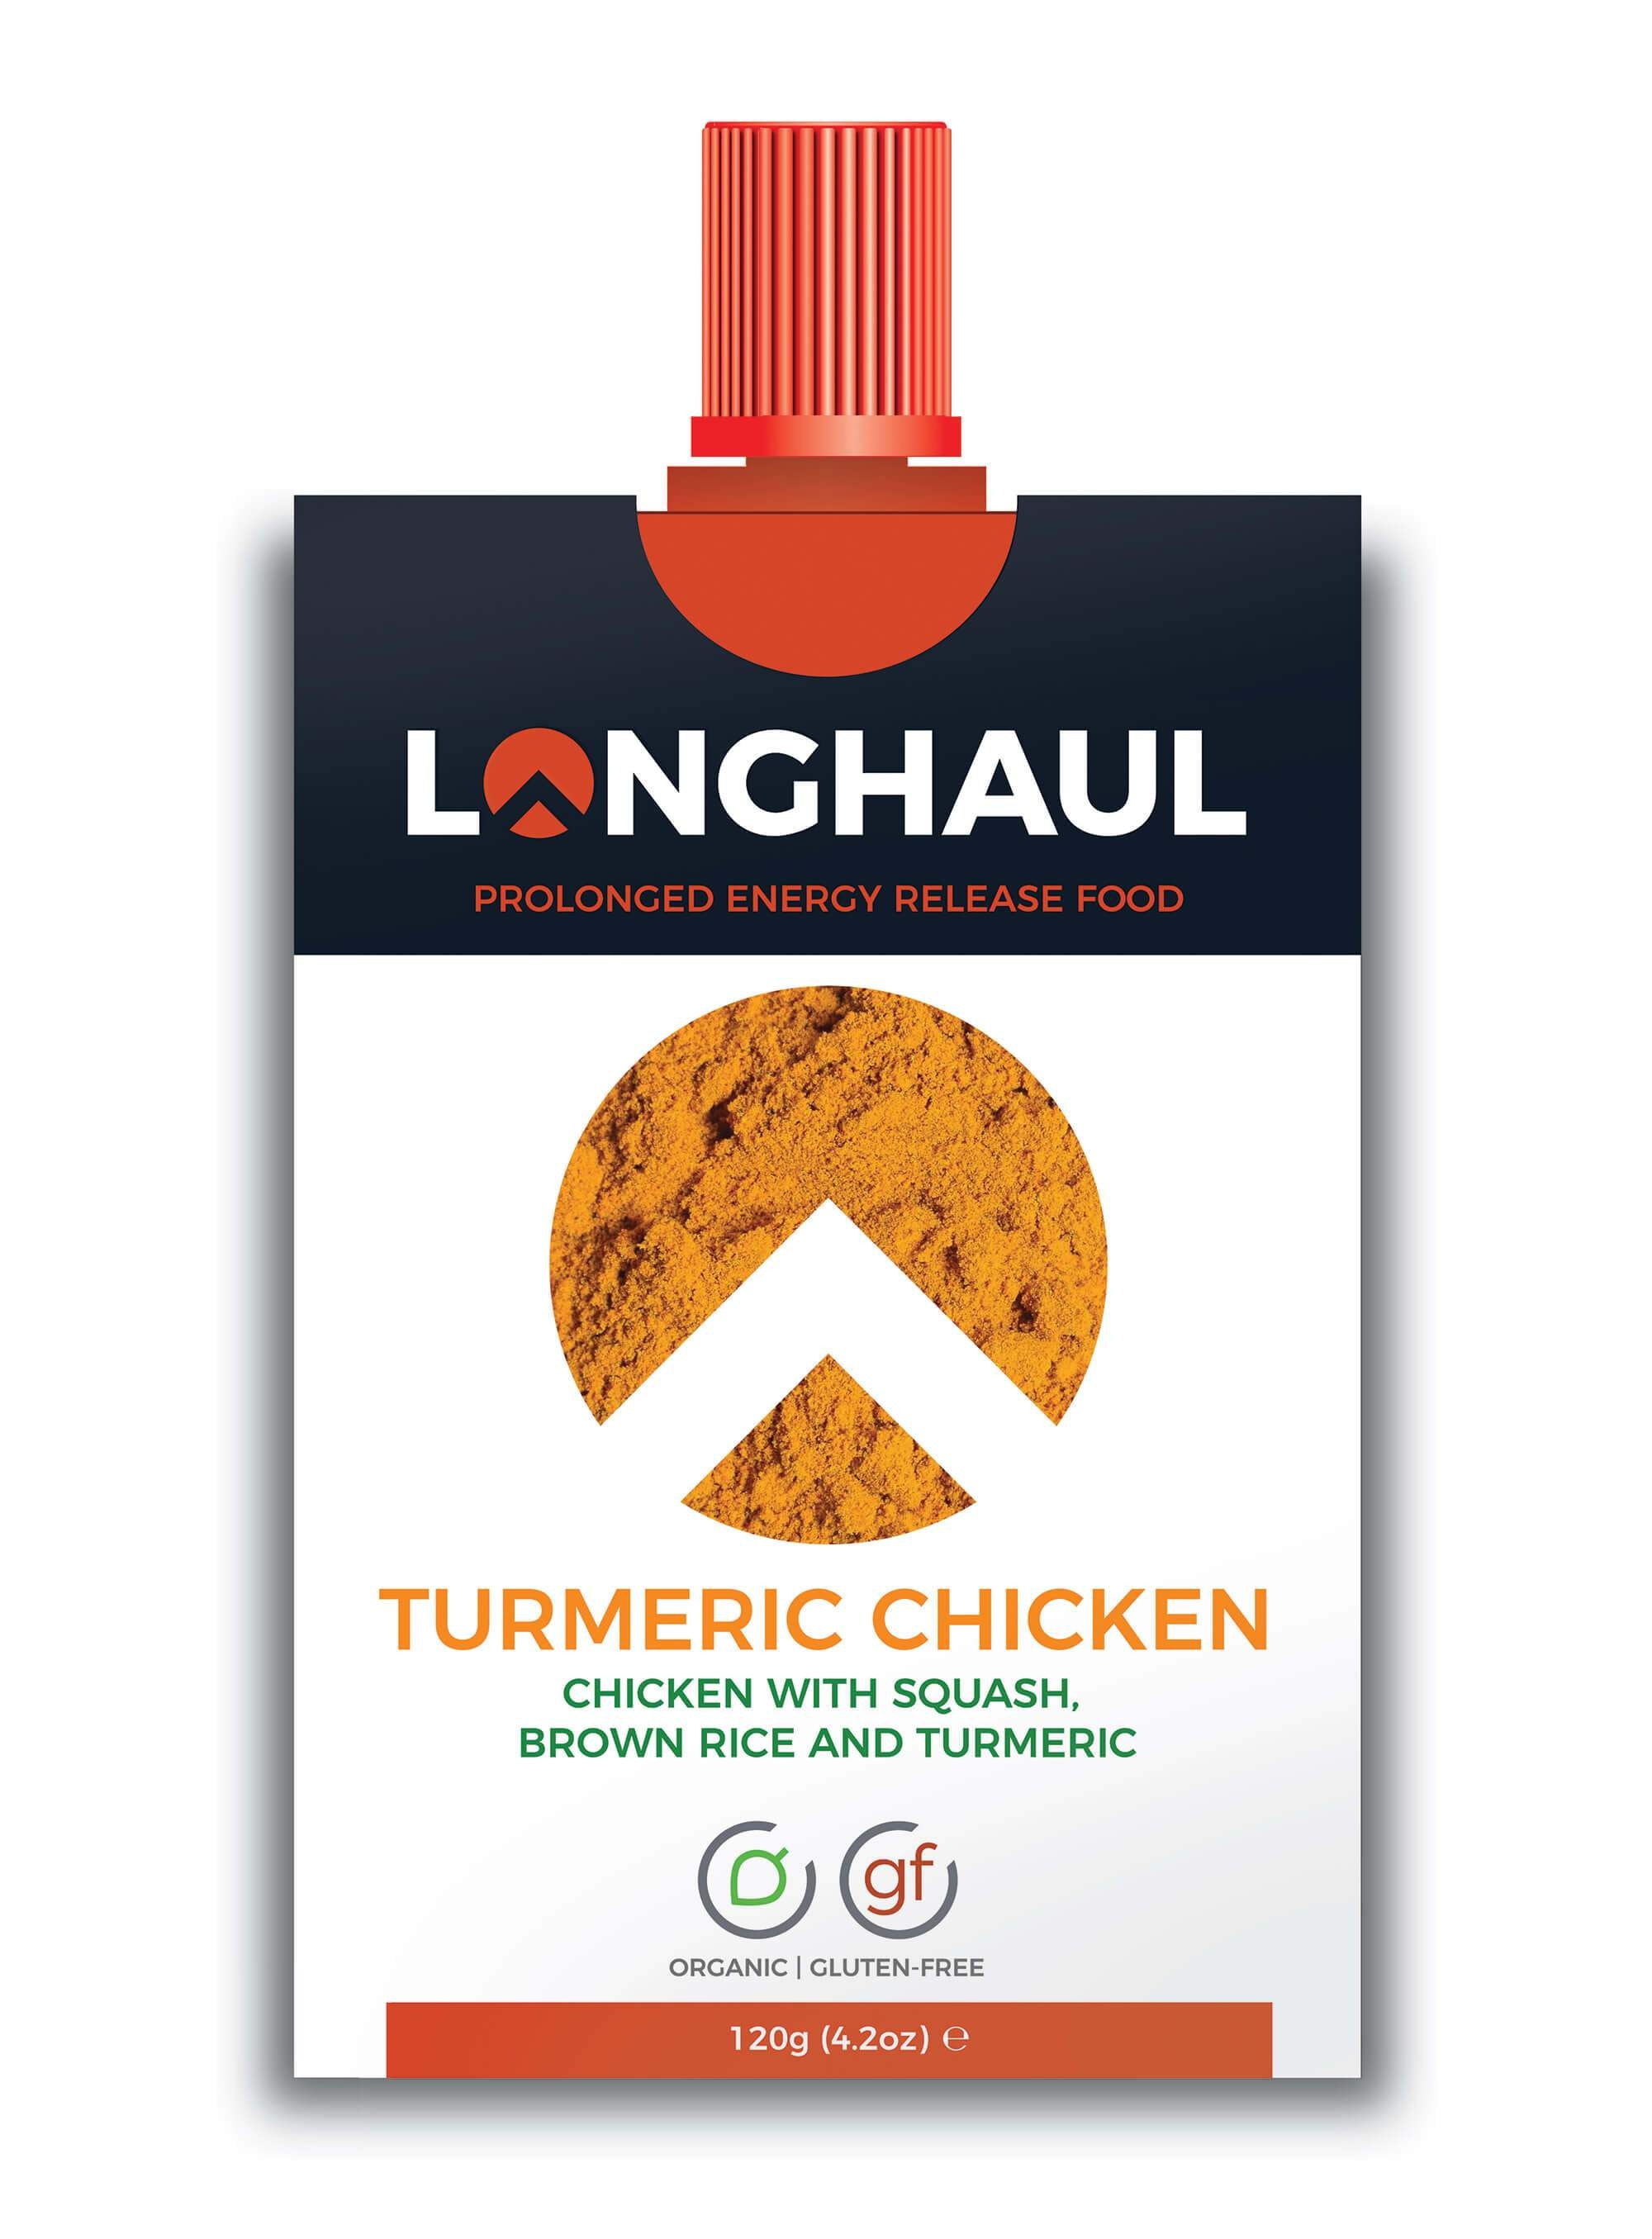 Longhaul Tumeric Chicken sweepstakes